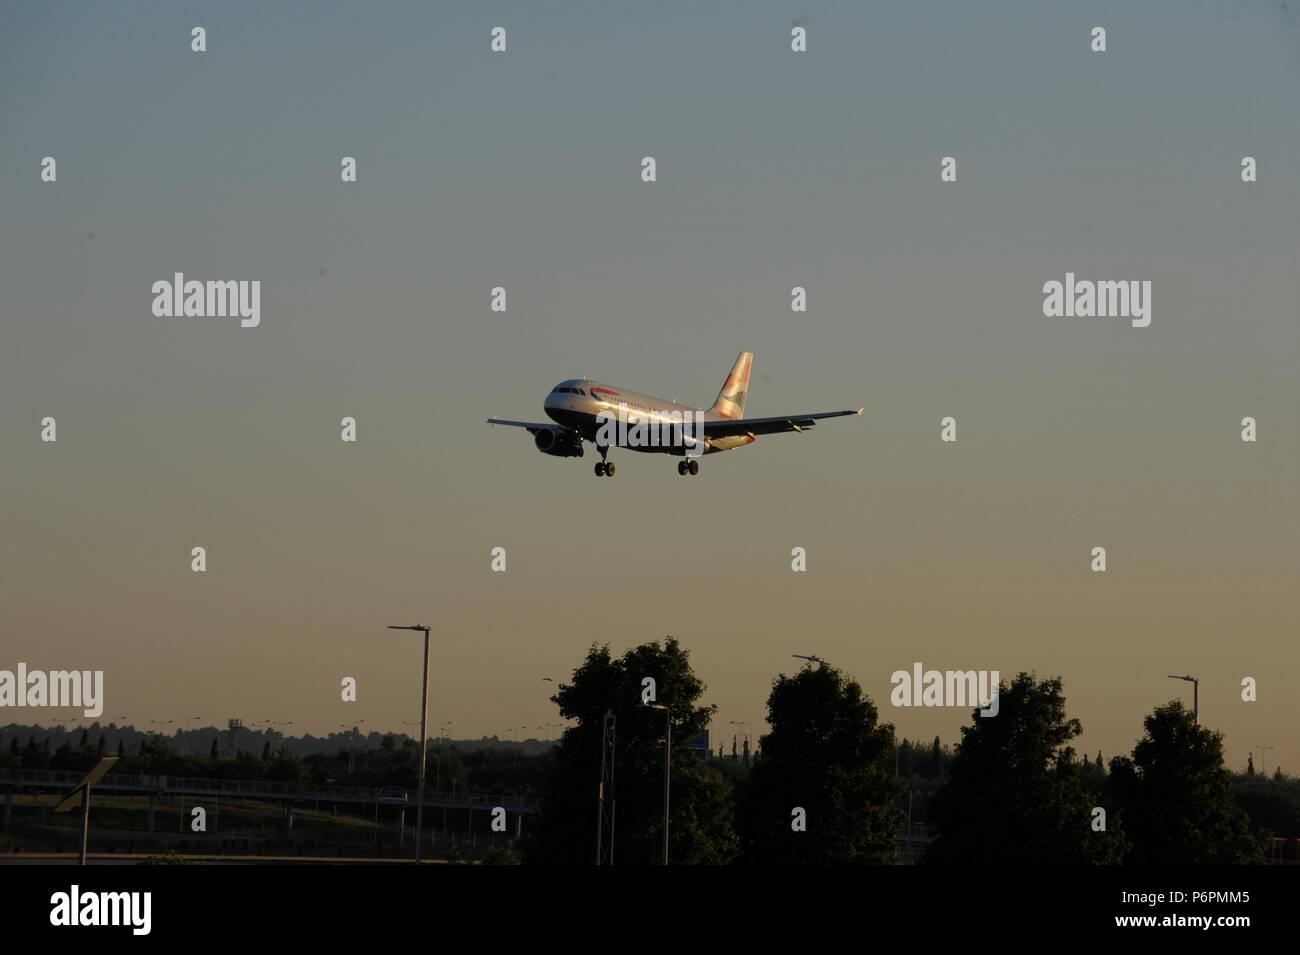 L'aéroport de Heathrow Photo Stock